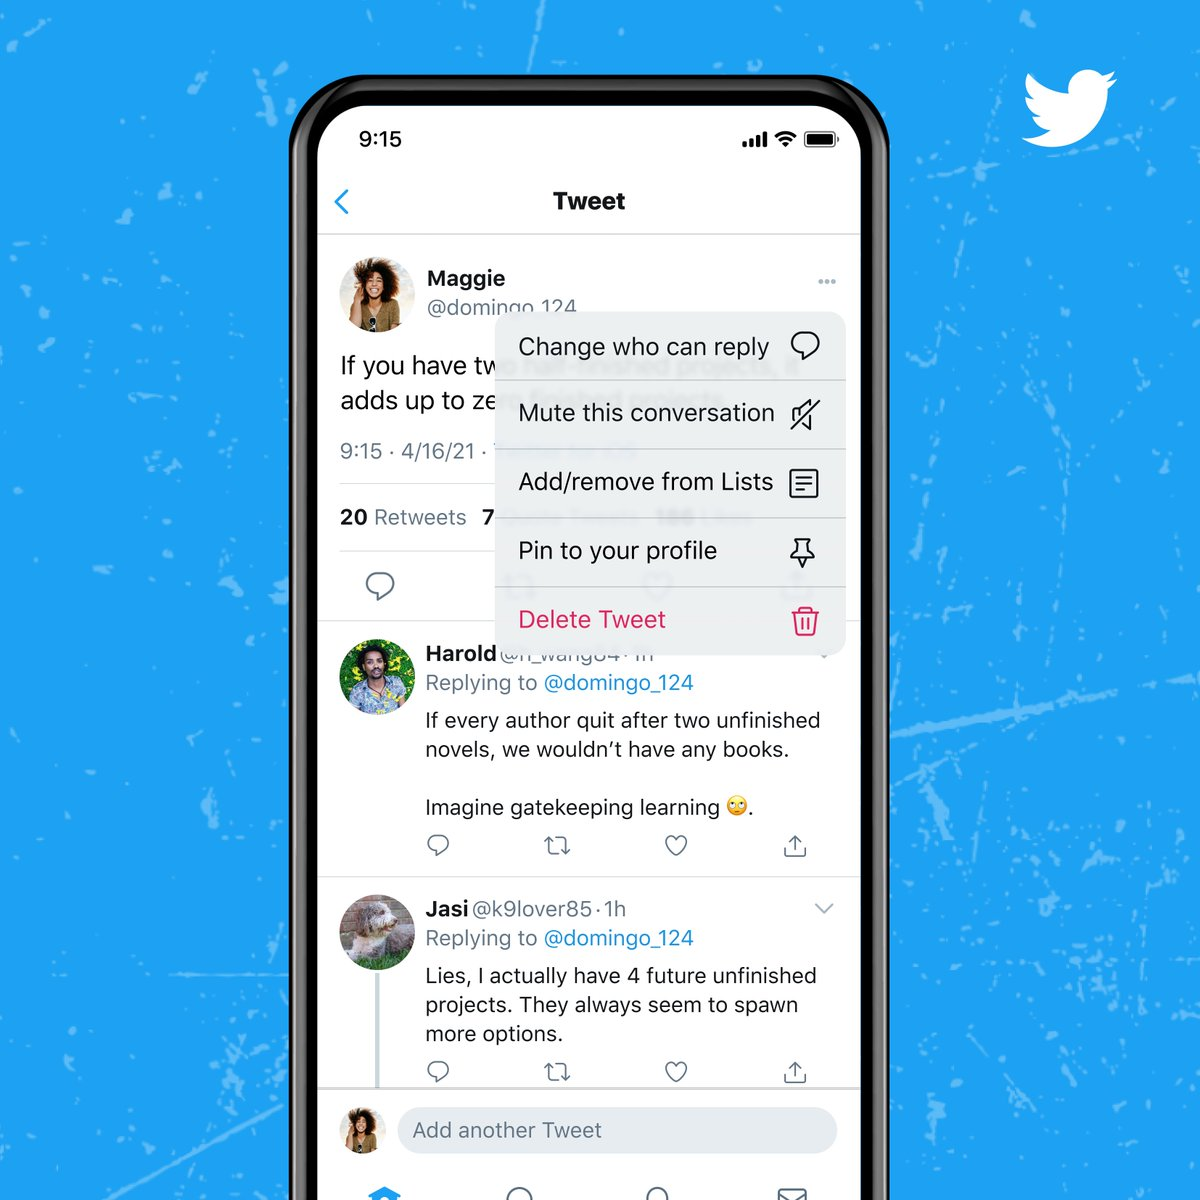 Your Tweets = Your space. Now you can change who can reply to you even after you Tweet. https://t.co/rNWJk6zWTr https://t.co/3HFSjAotg7